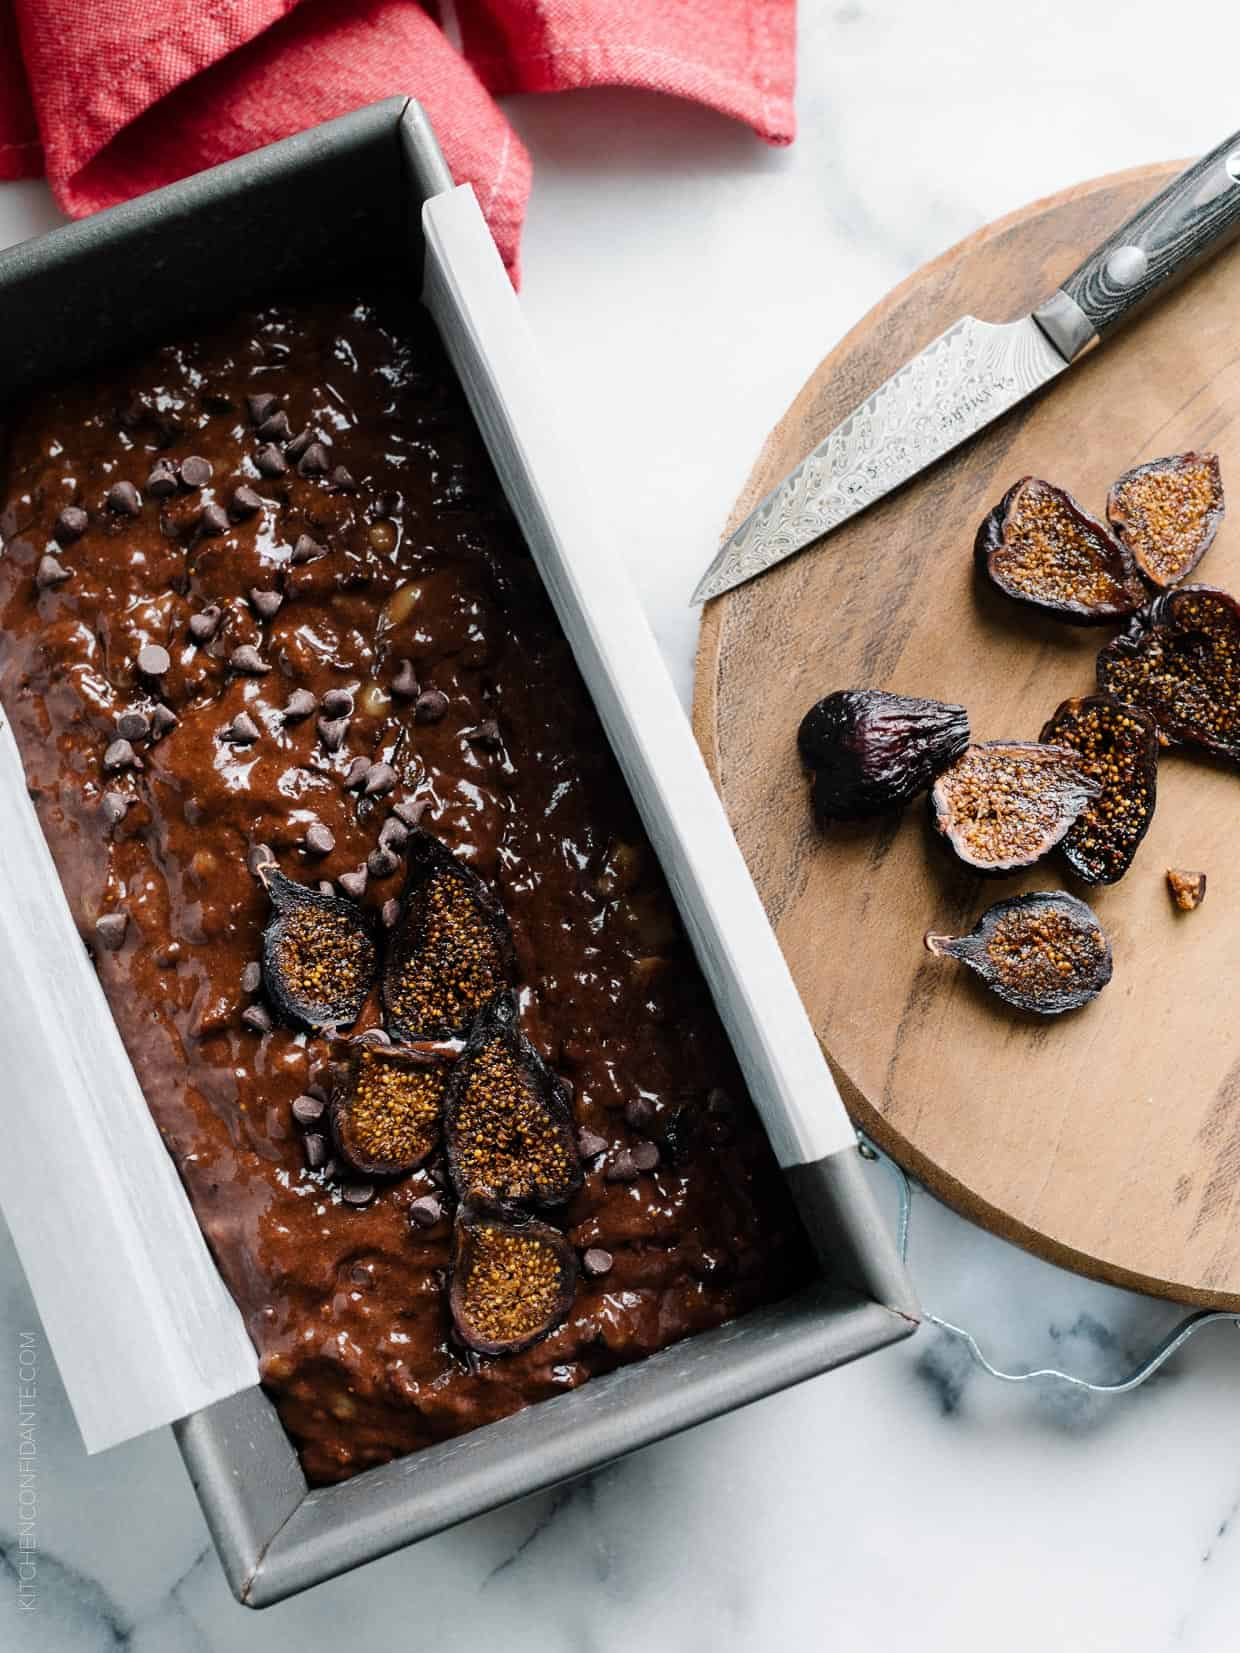 Chocolate and figs pair perfectly together in this Chocolate Banana Fig Bread.